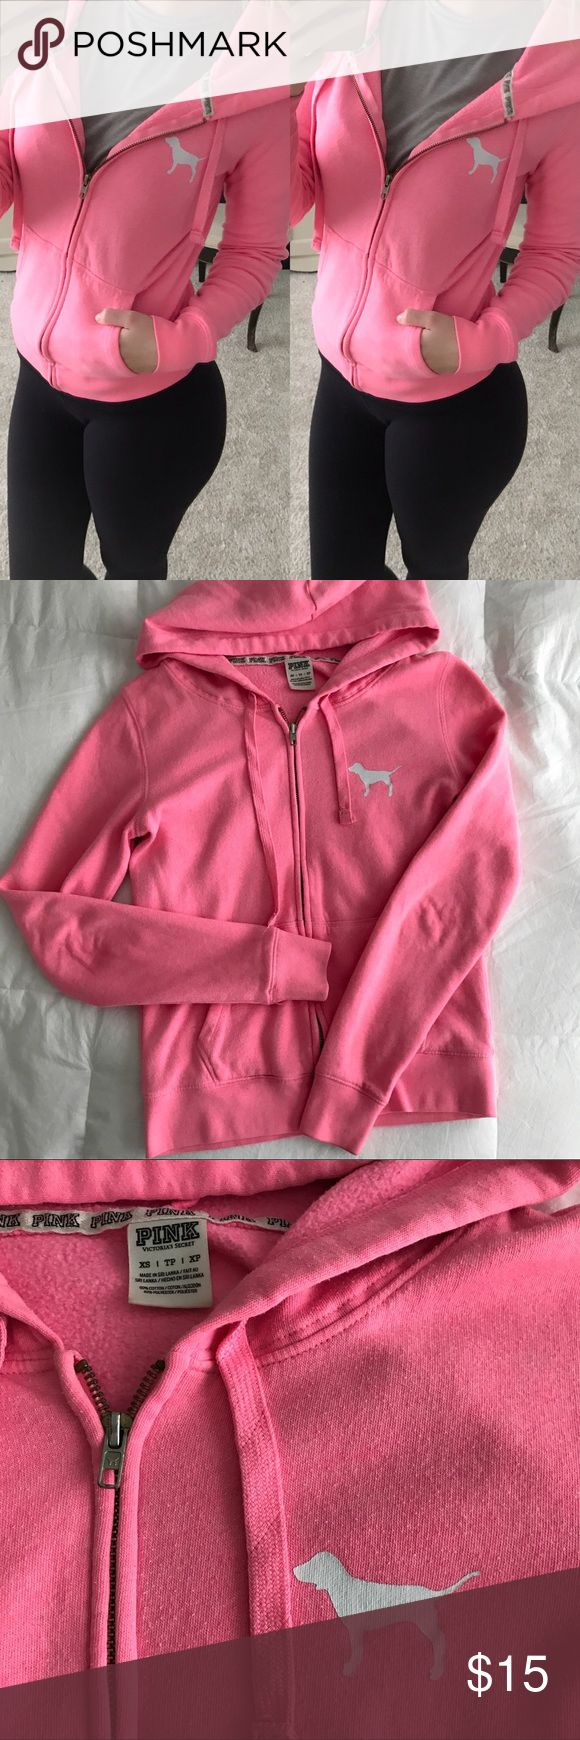 Victoria's Secret PINK zip up hoodie! Perfect condition! Bright pink PINK zip up hoodie with writing on the back! PINK Victoria's Secret Sweaters